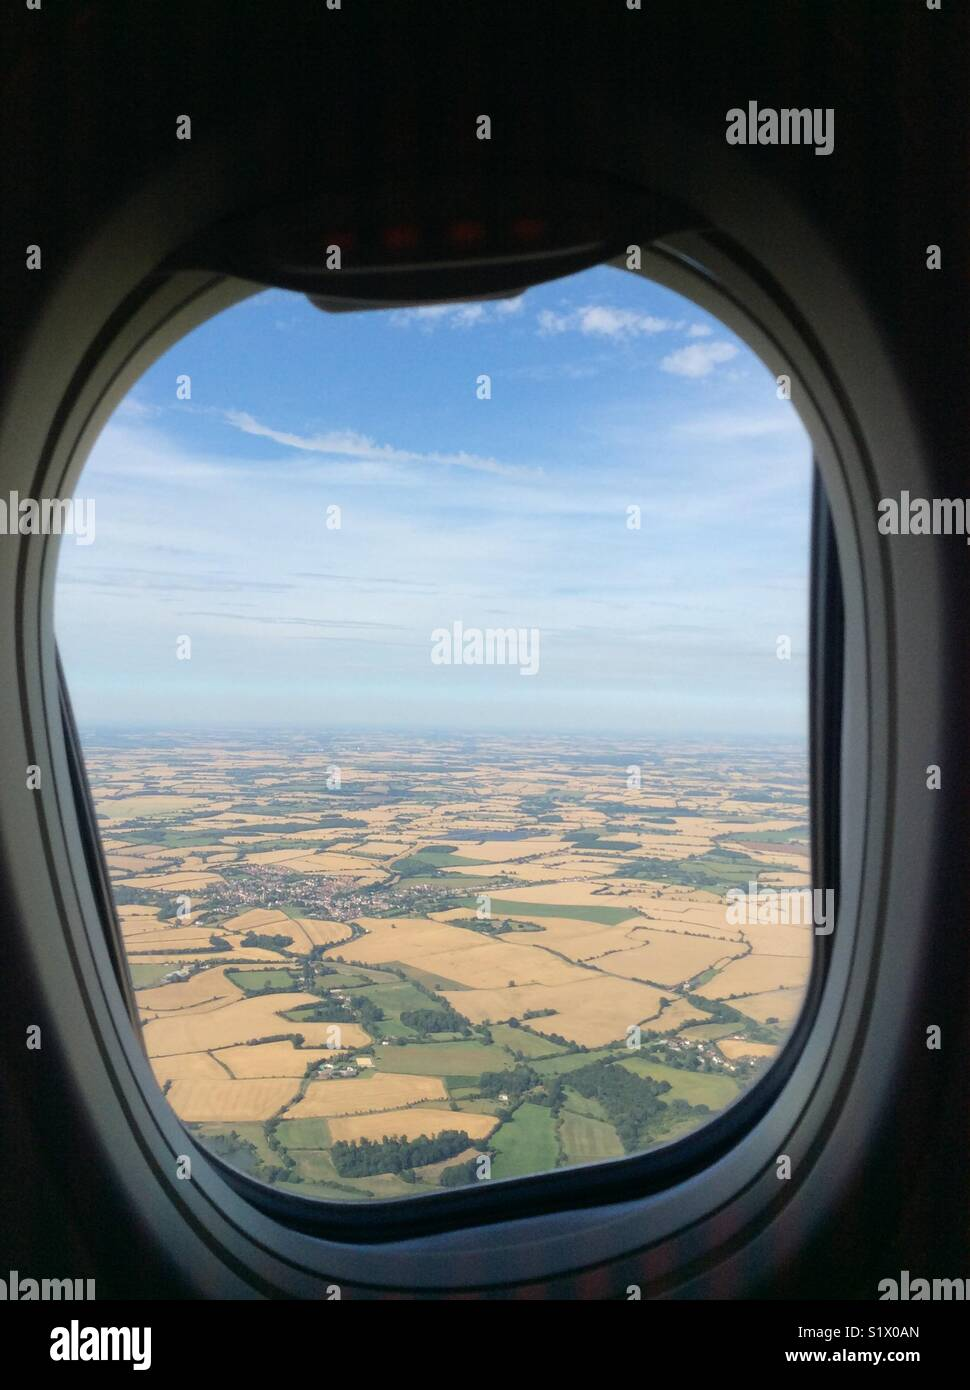 View from aeroplane window of British countryside - Stock Image